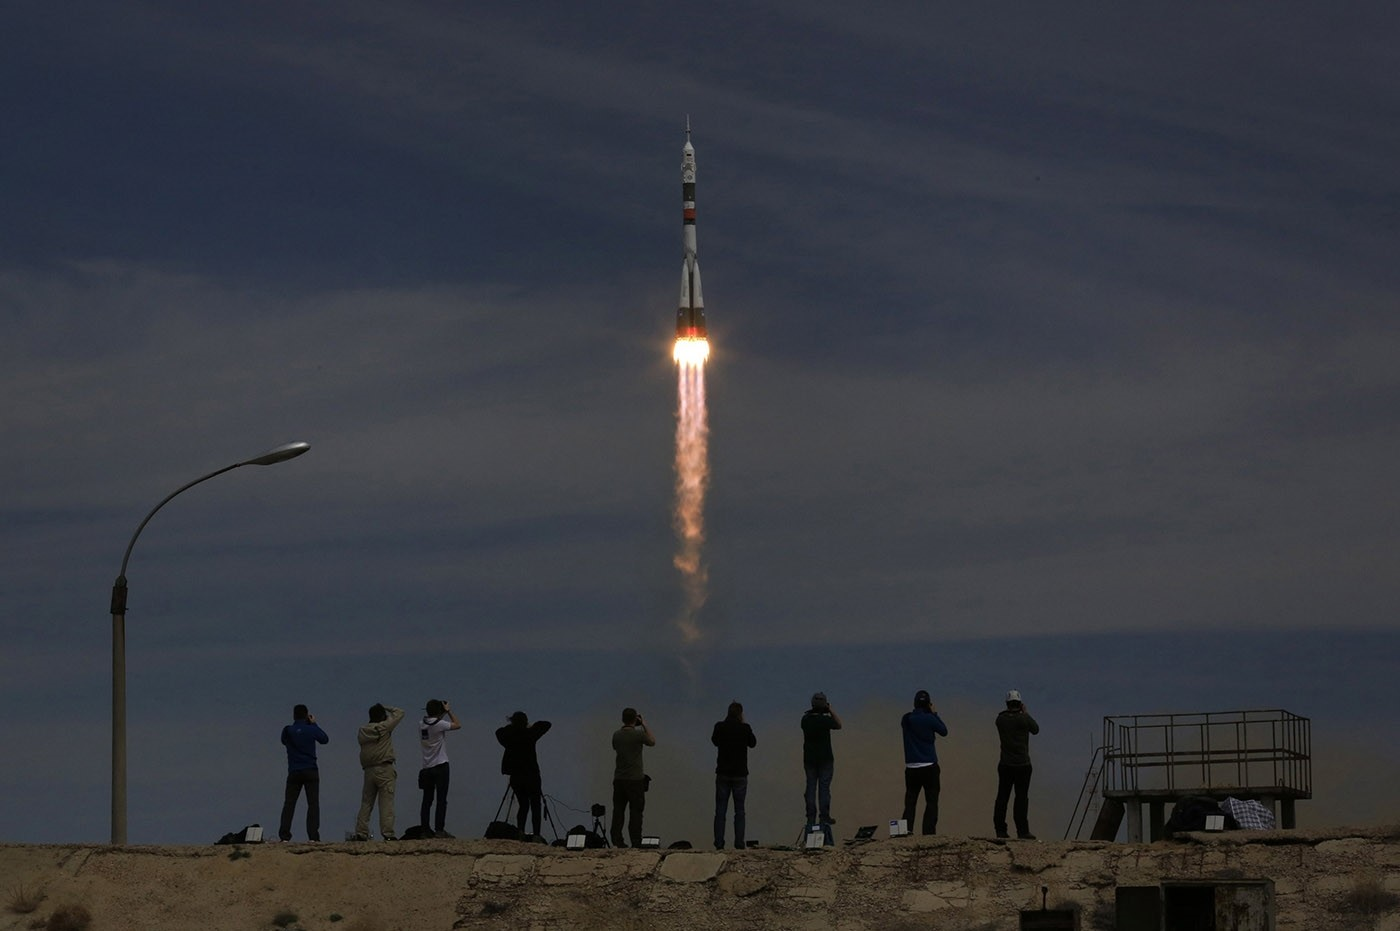 Soyuz capsule carrying American, Russian duo blasts off for space station